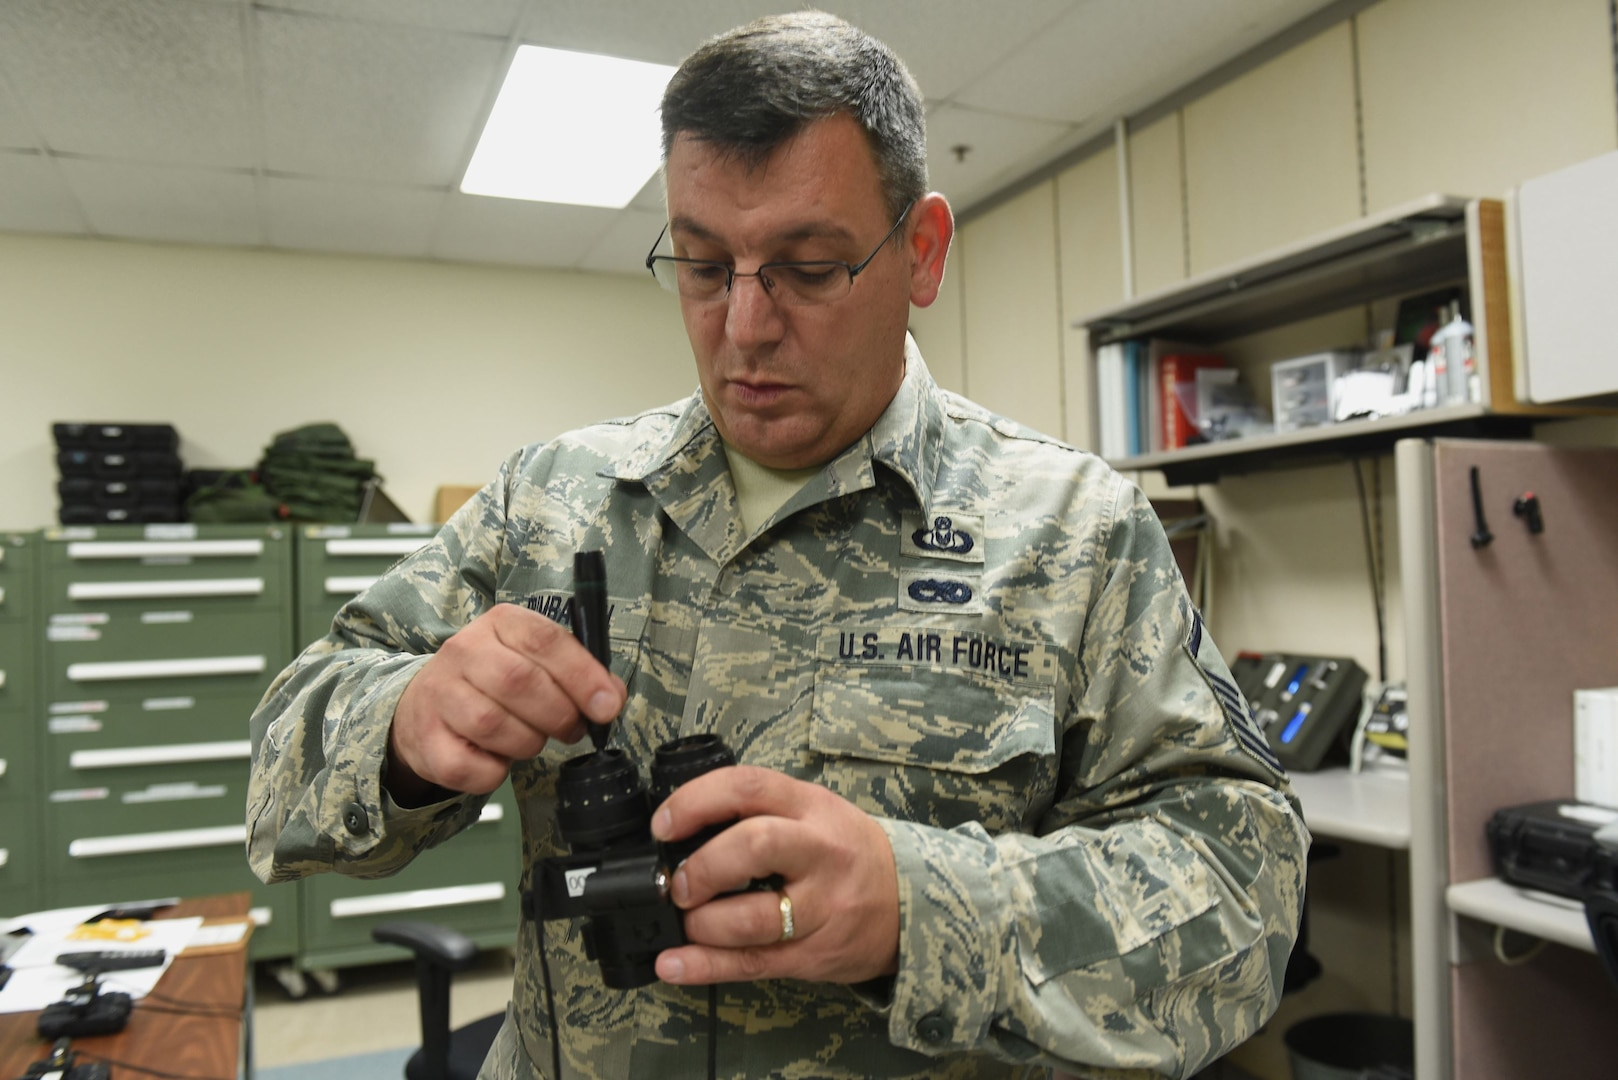 Master Sgt. Delbert Brumbaugh, an aircrew flight equipment journeyman with the Kentucky Air Guard's 123rd Operations Support Squadron in Louisville, Ky., cleans the lenses of night-vision goggles in preparation for aircrew use June 9, 2017. Regular maintenance and inspection of life-saving equipment is the mission of the aircrew flight equipment shop.